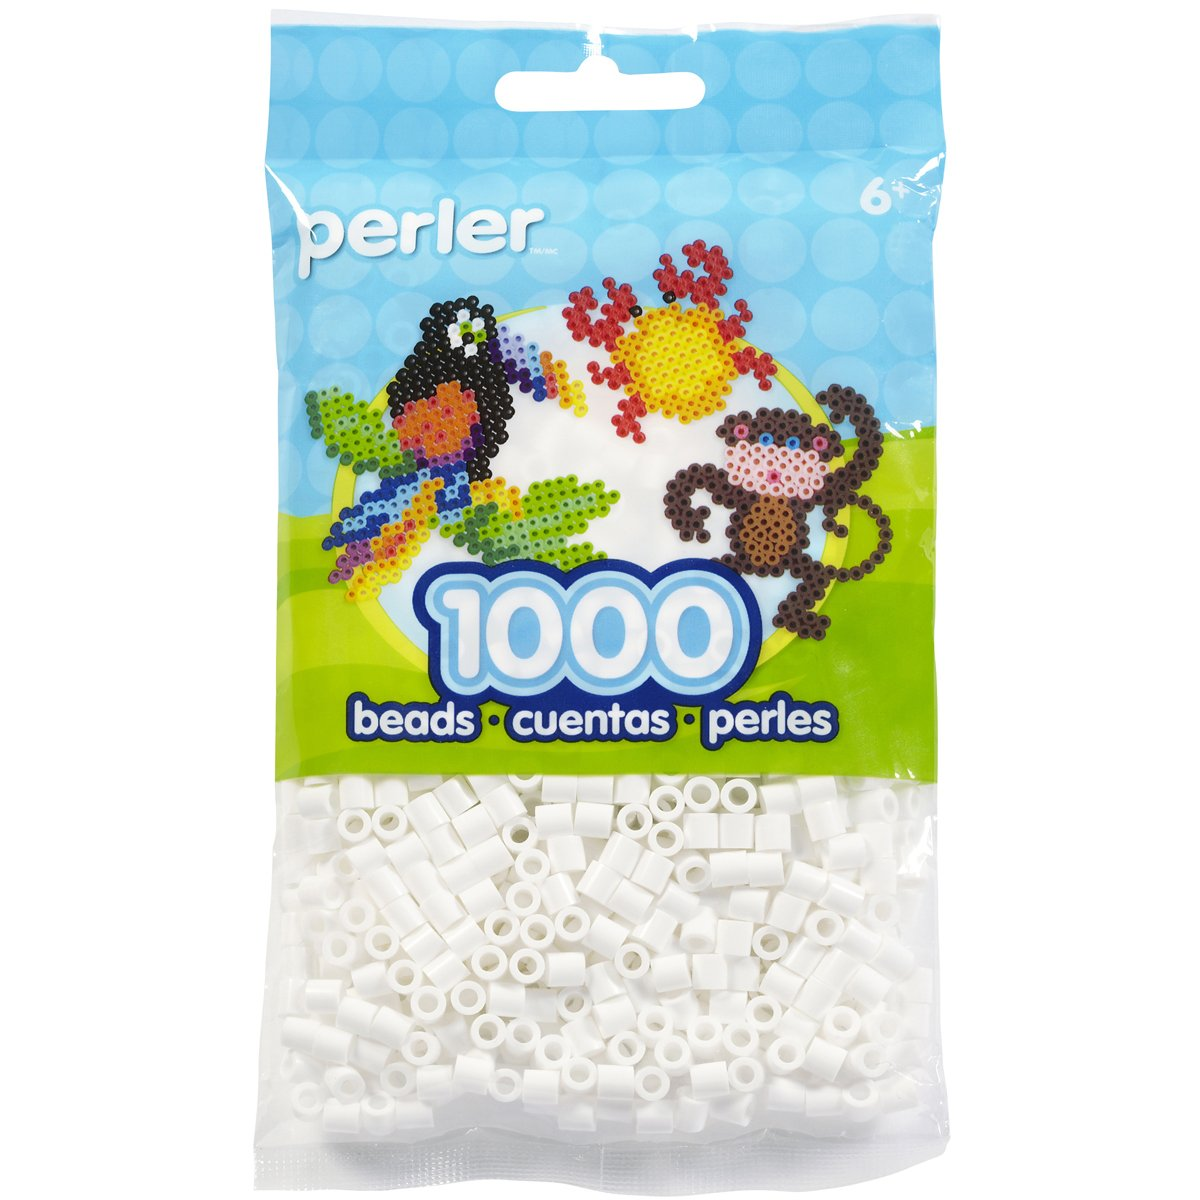 White Perler Beads Fuse Beads for Crafts 1000pcs